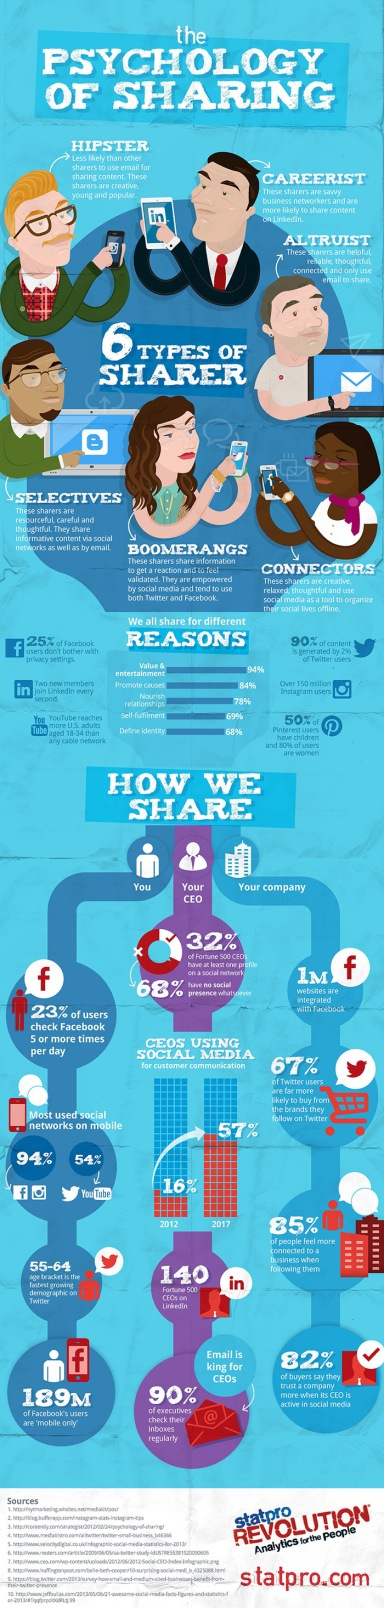 psychology-of-sharing-infographic